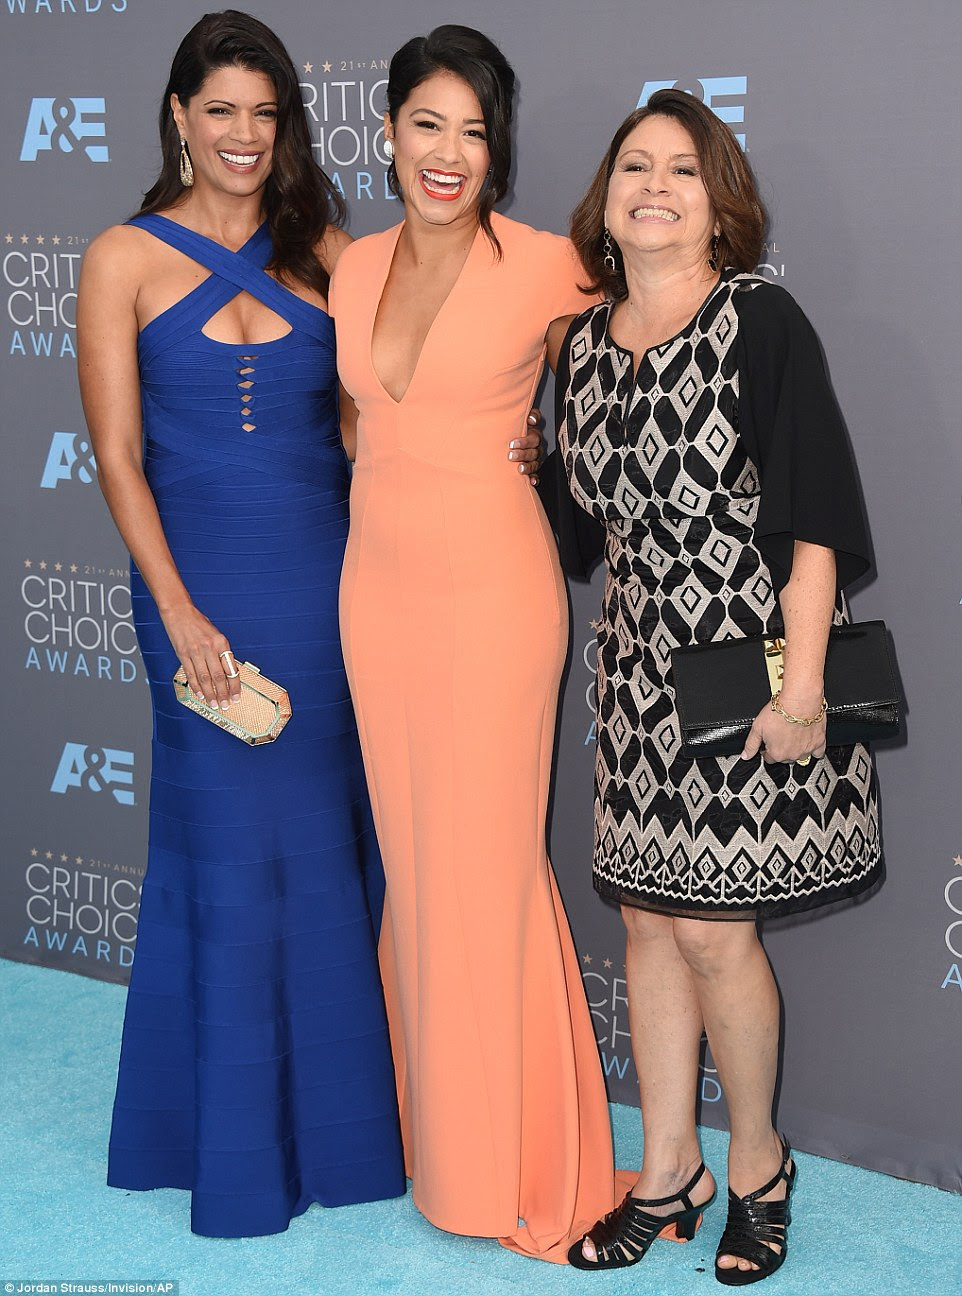 Her two families: The Jane The Virgin star was joined by her on-screen mother Andrea Navedo (L), and real mother Magali Rodriguez